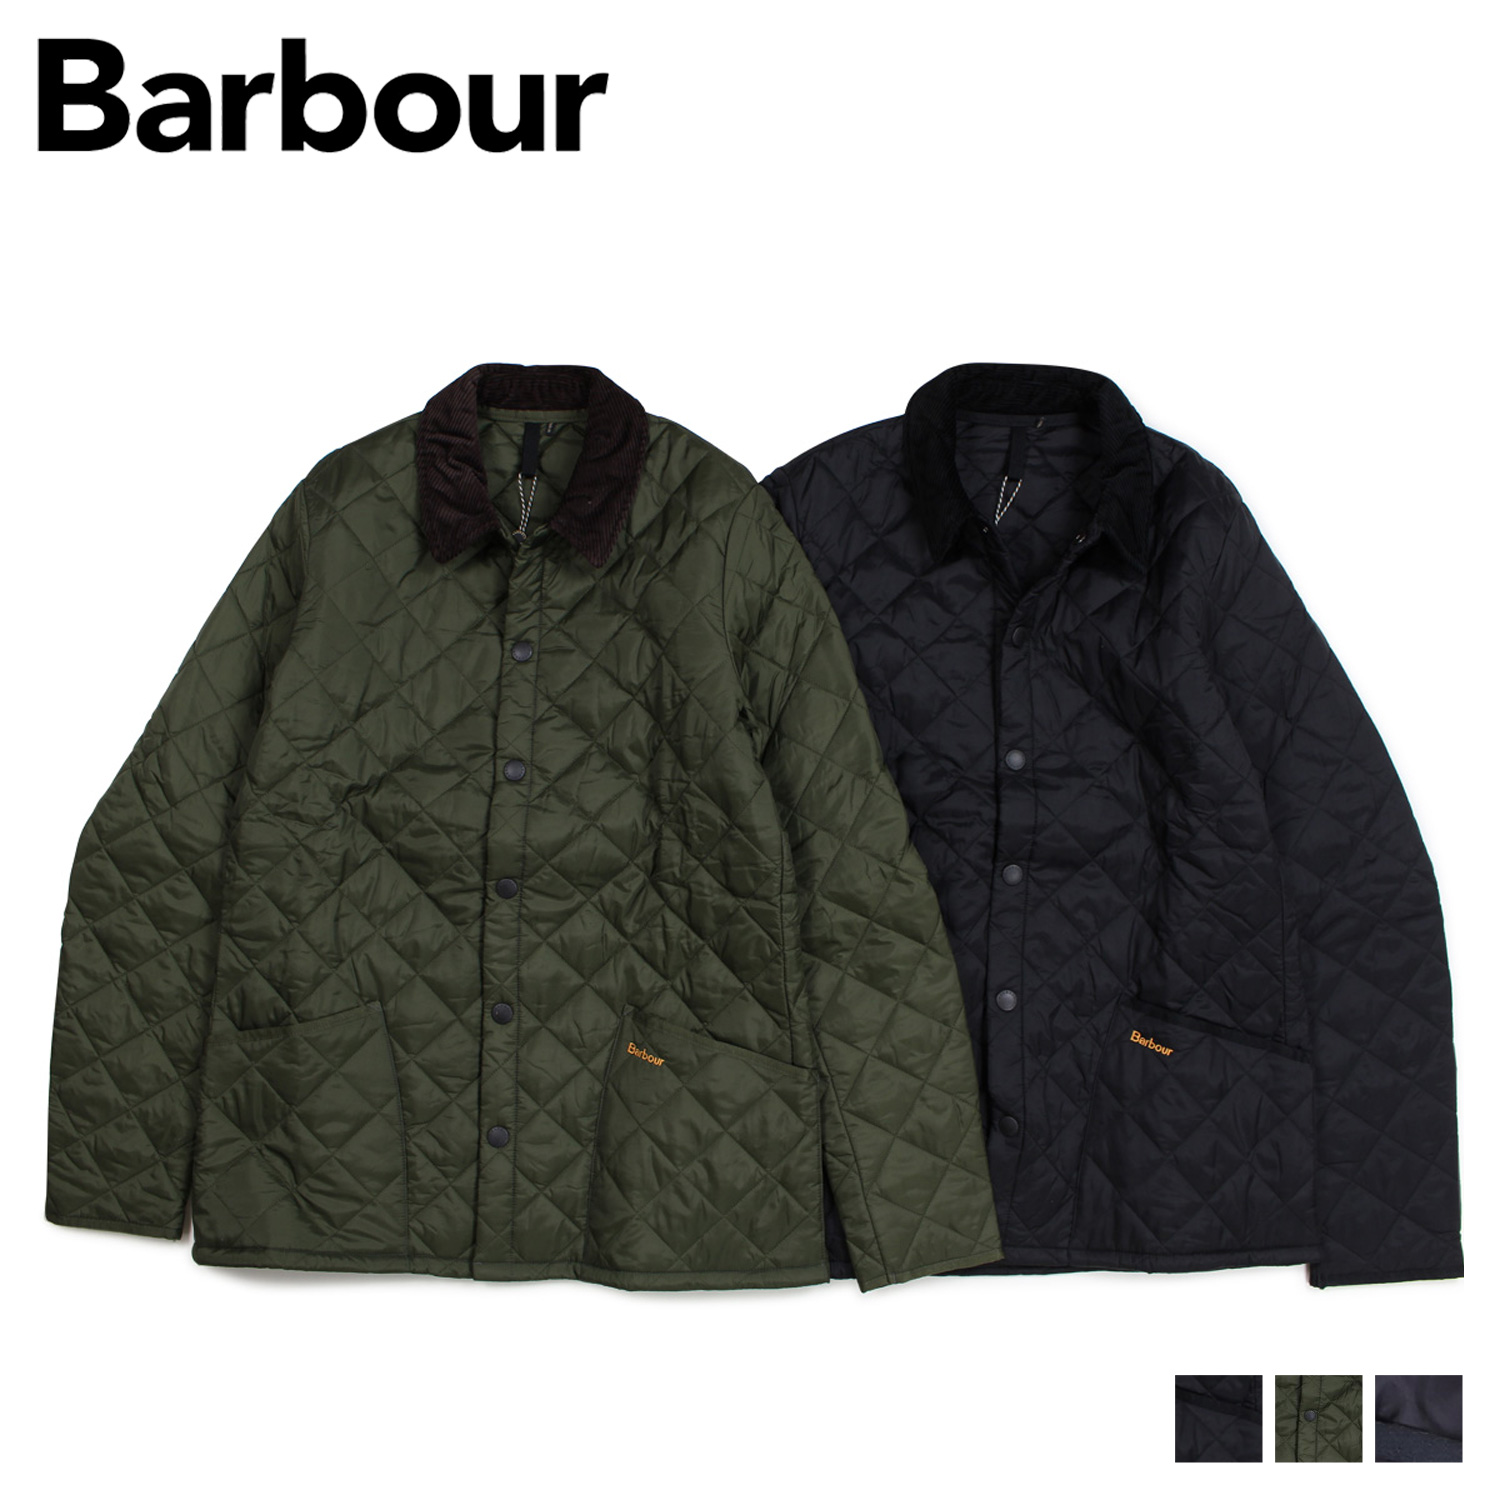 Barbour バブアー ジャケット メンズ ヘリテージ リッズデイル HERITAGE LIDDESDALE QUILTED JACKET ブラック オリーブ MQU0240